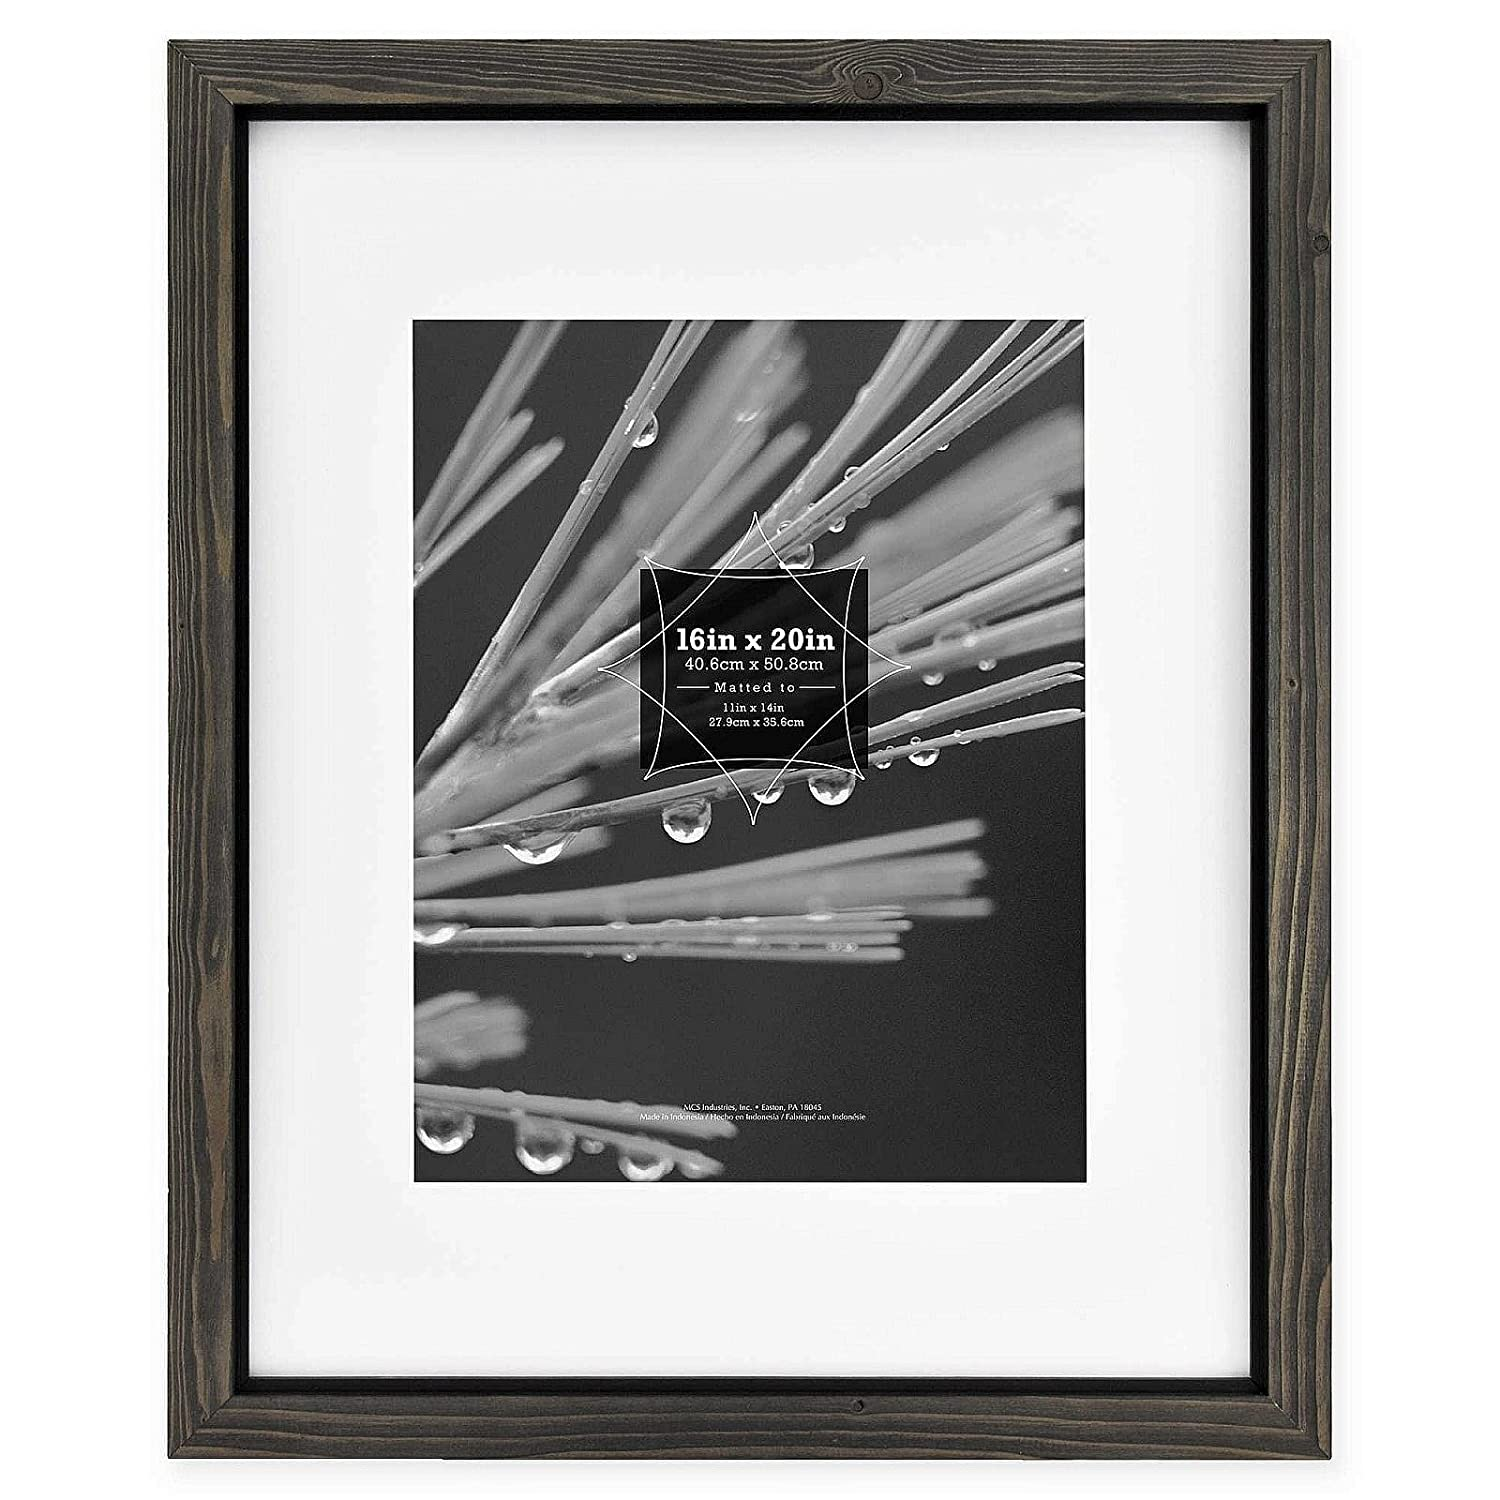 0e163631de69 Amazon.com - Timber Distressed Gray Black Wood 16x20 11x14 Matted Frame by  MCS - 11x14 -